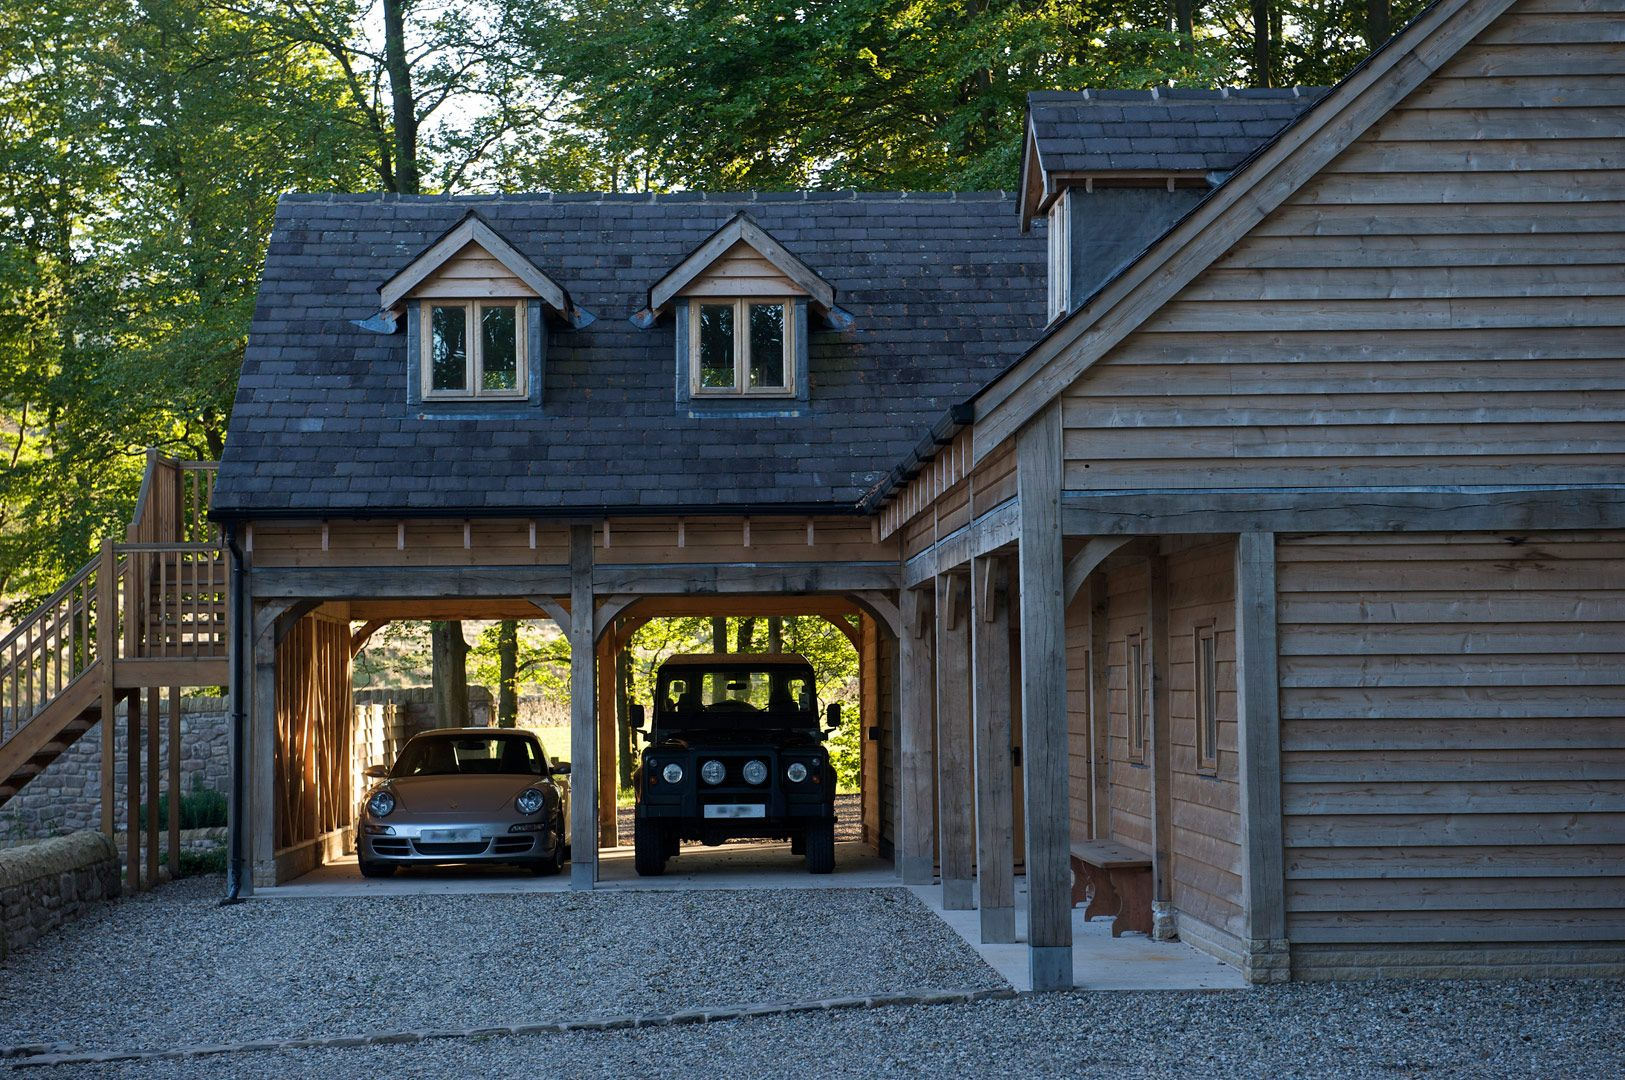 garages with rooms above border oak oak framed houses